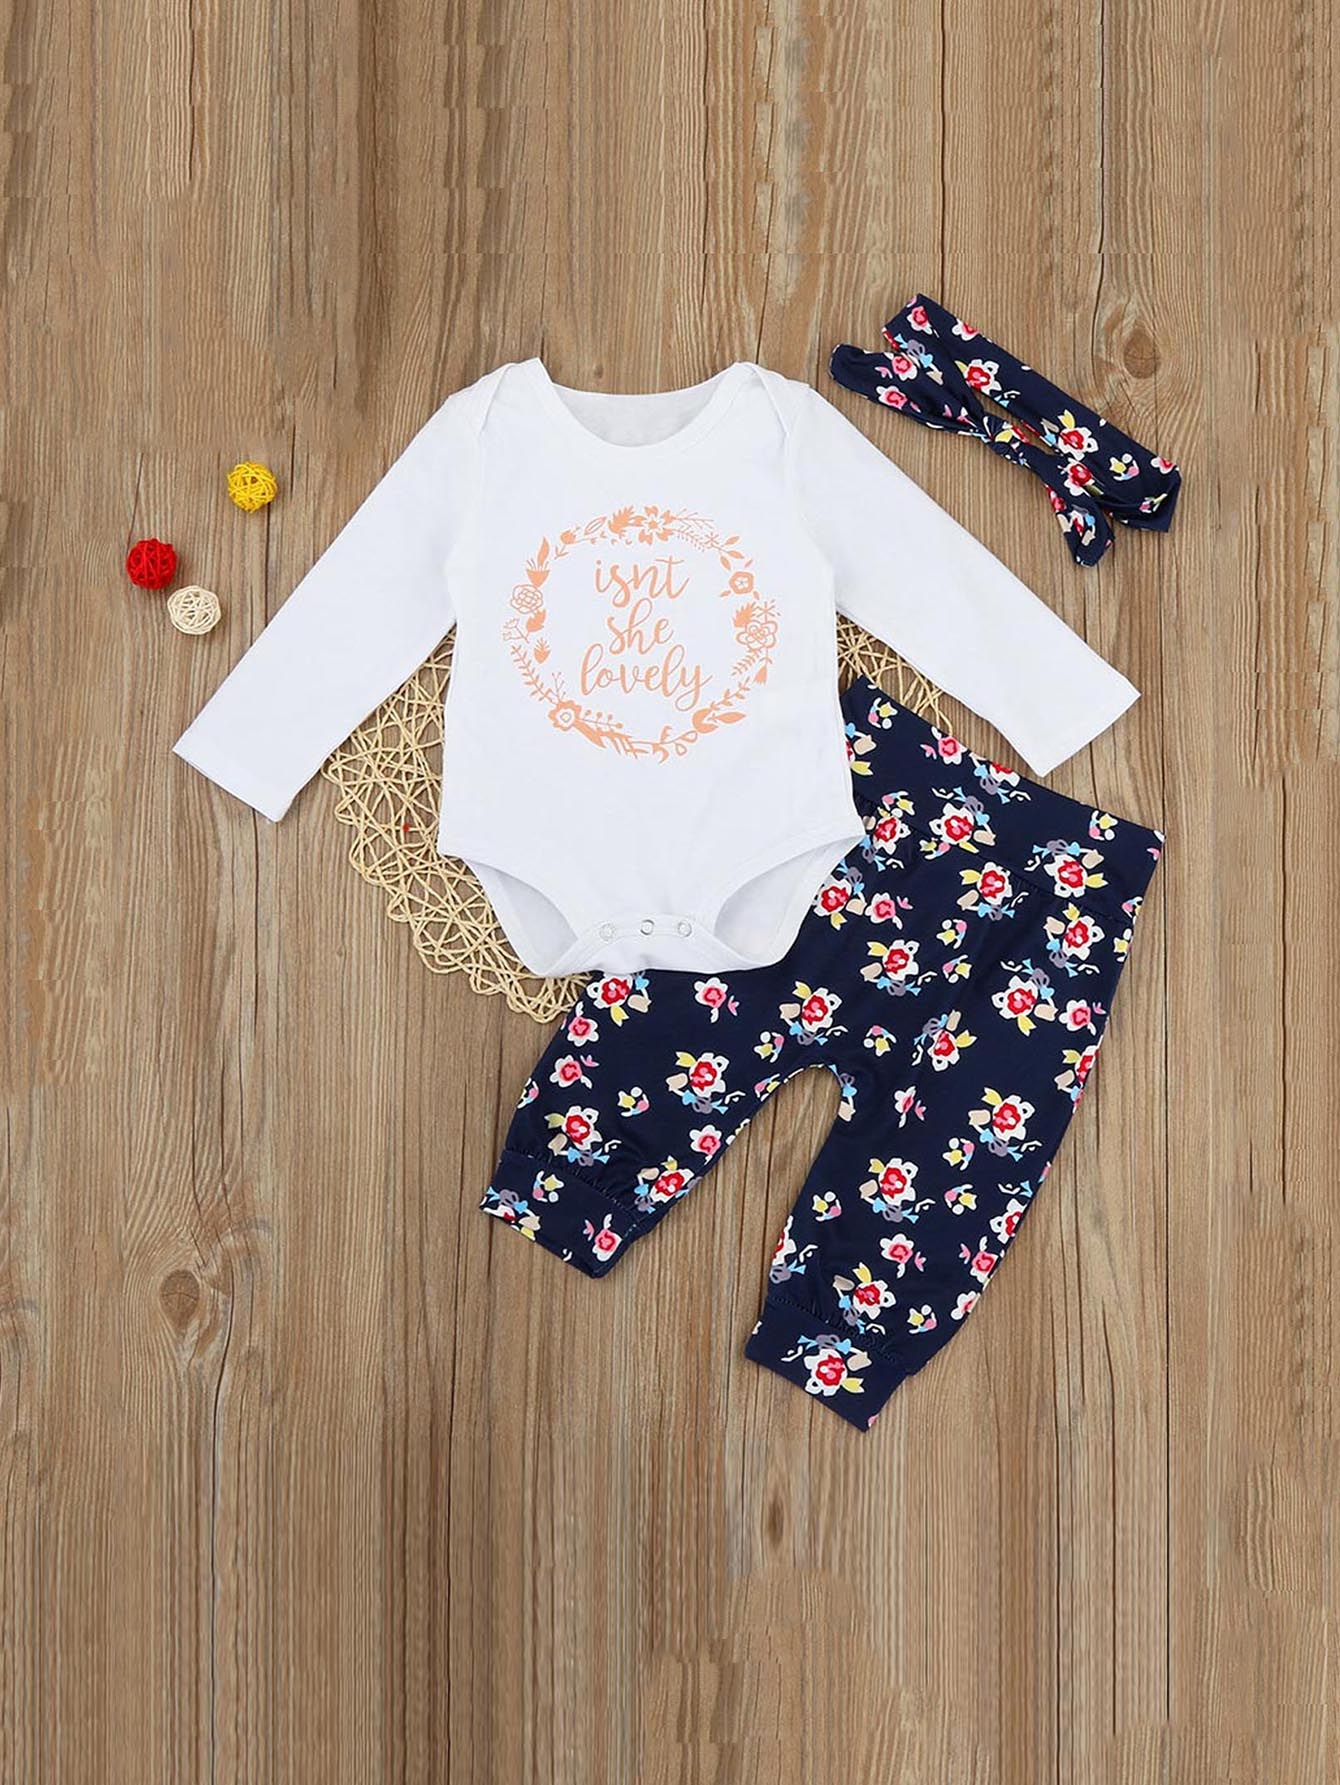 Boys Letter Print Romper & Floral Print Pants Set With Headband original huimei 51pcs electric train railway tracks building blocks set boys brick toys compatible with duplo baby gift